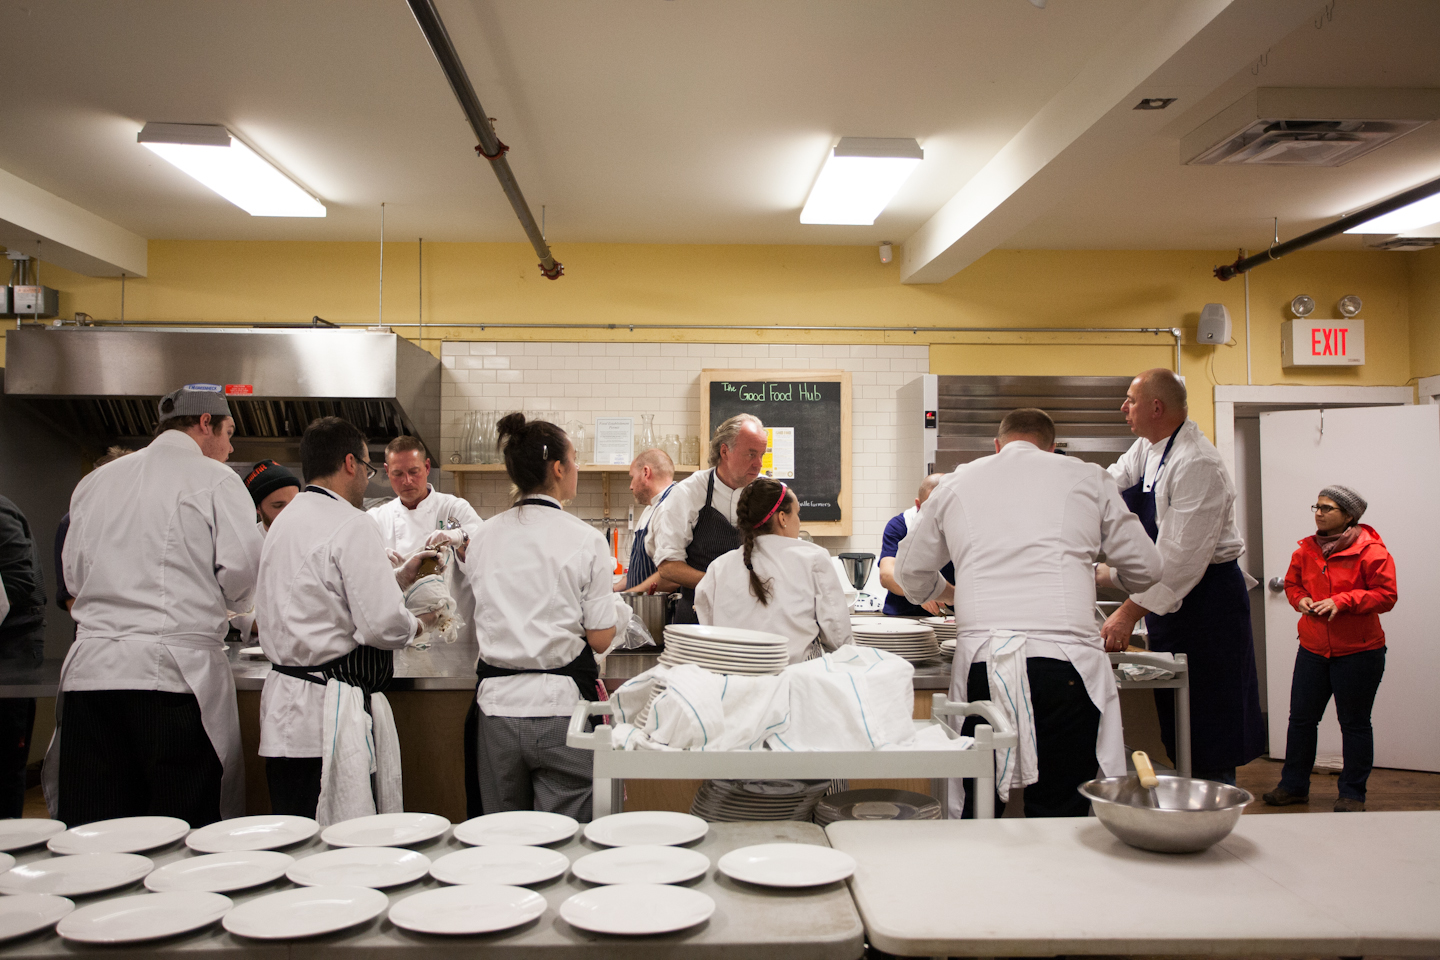 Celebrity Chef Dinner with Normand Laprise, John Higgins, Stephen Wall, Ardon Mofford & Martin Ruíz Salvador